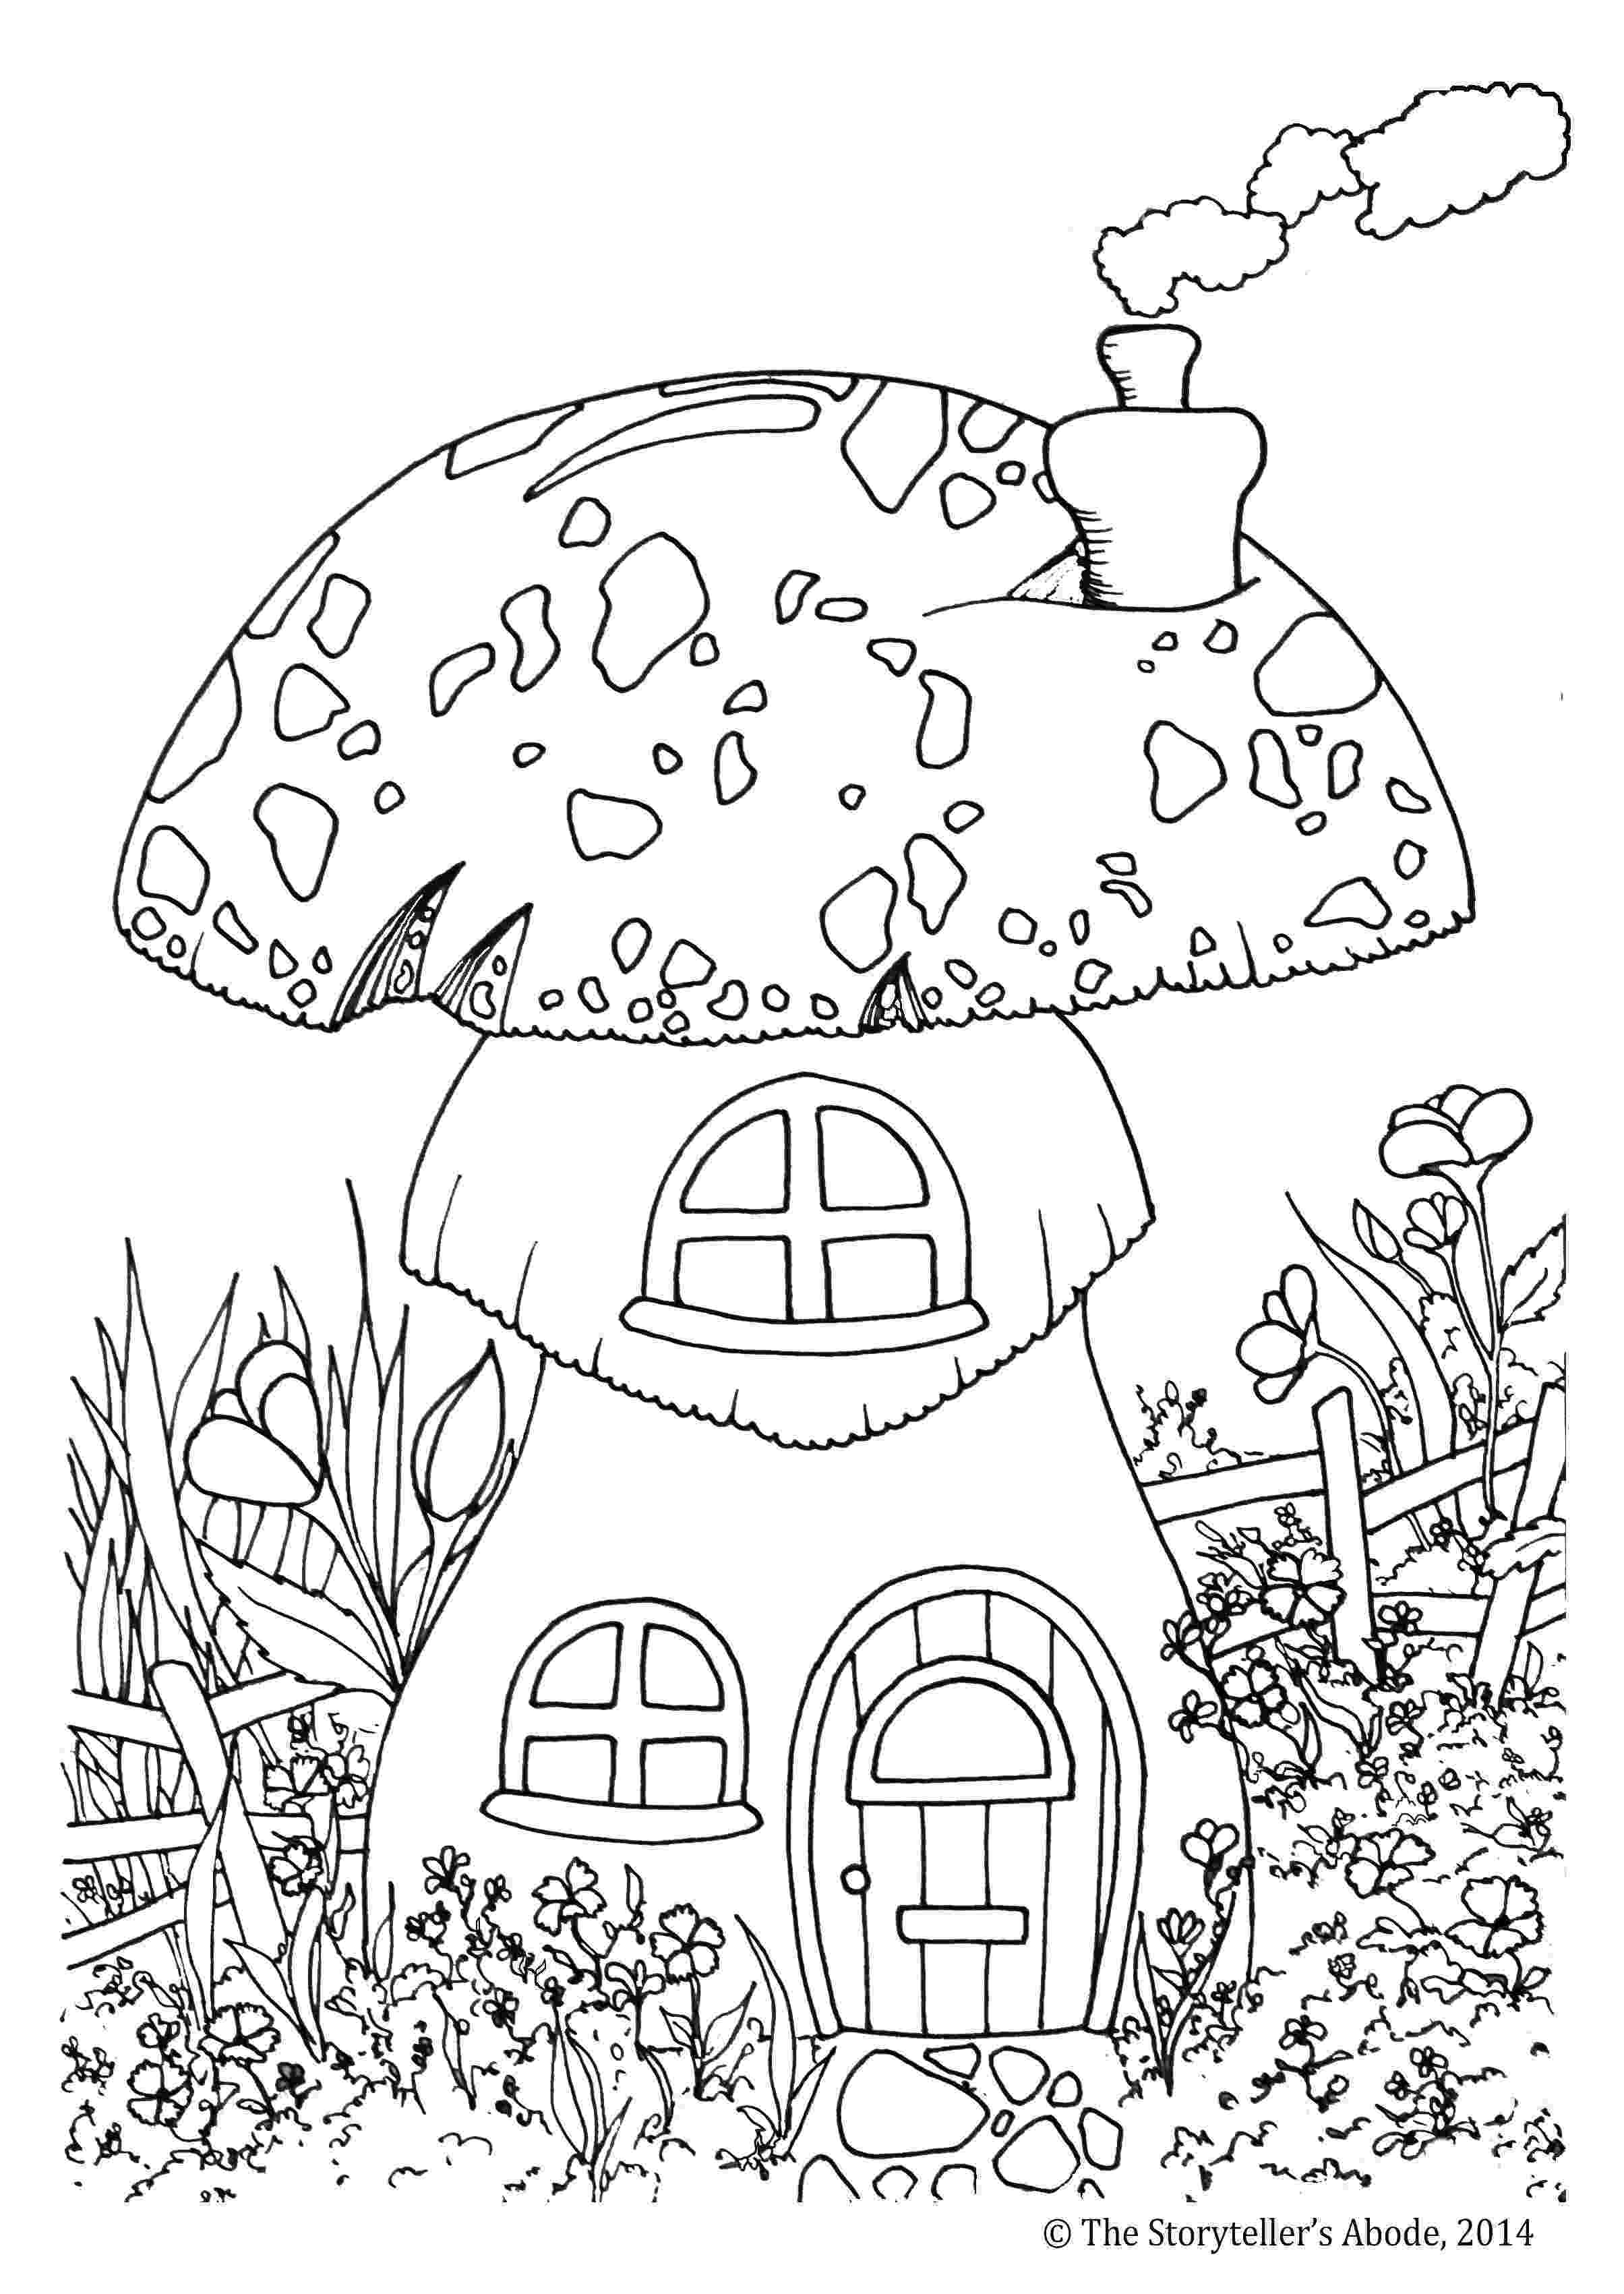 forest coloring sheets enchanted forest colouring pictures an enchanted place sheets coloring forest